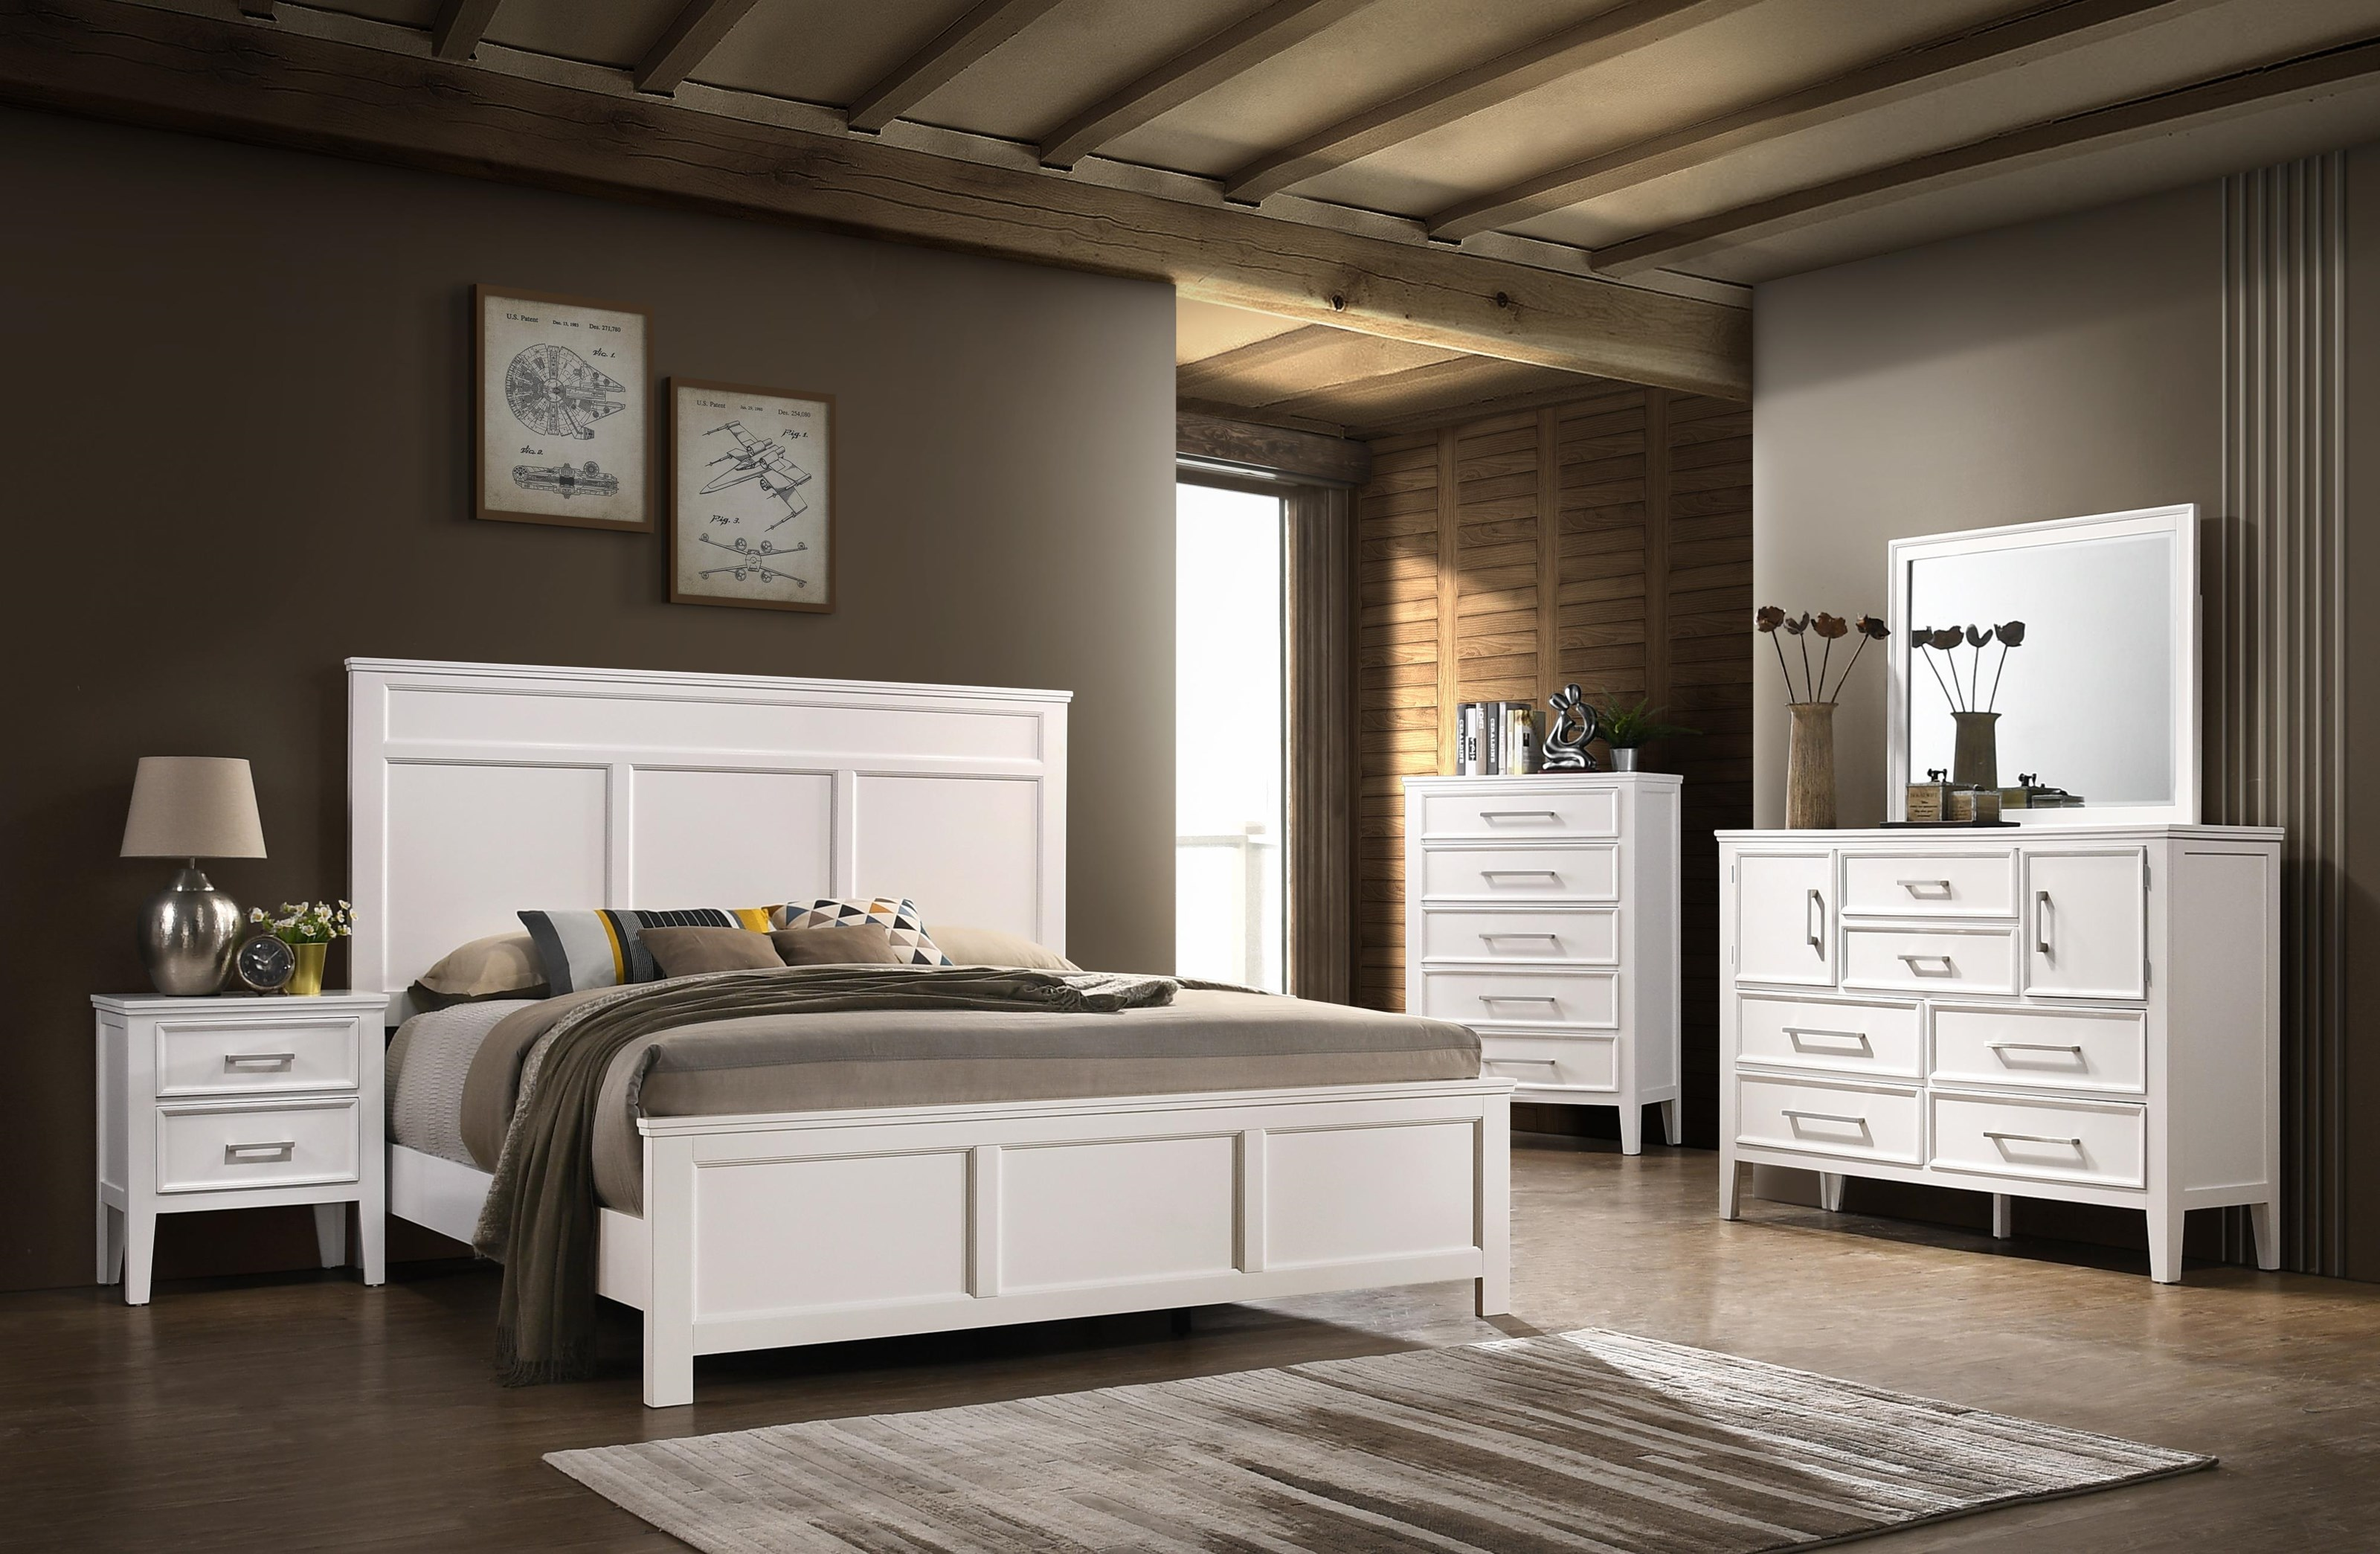 Andover Cal-King Bedroom Group by New Classic at Furniture Superstore - Rochester, MN